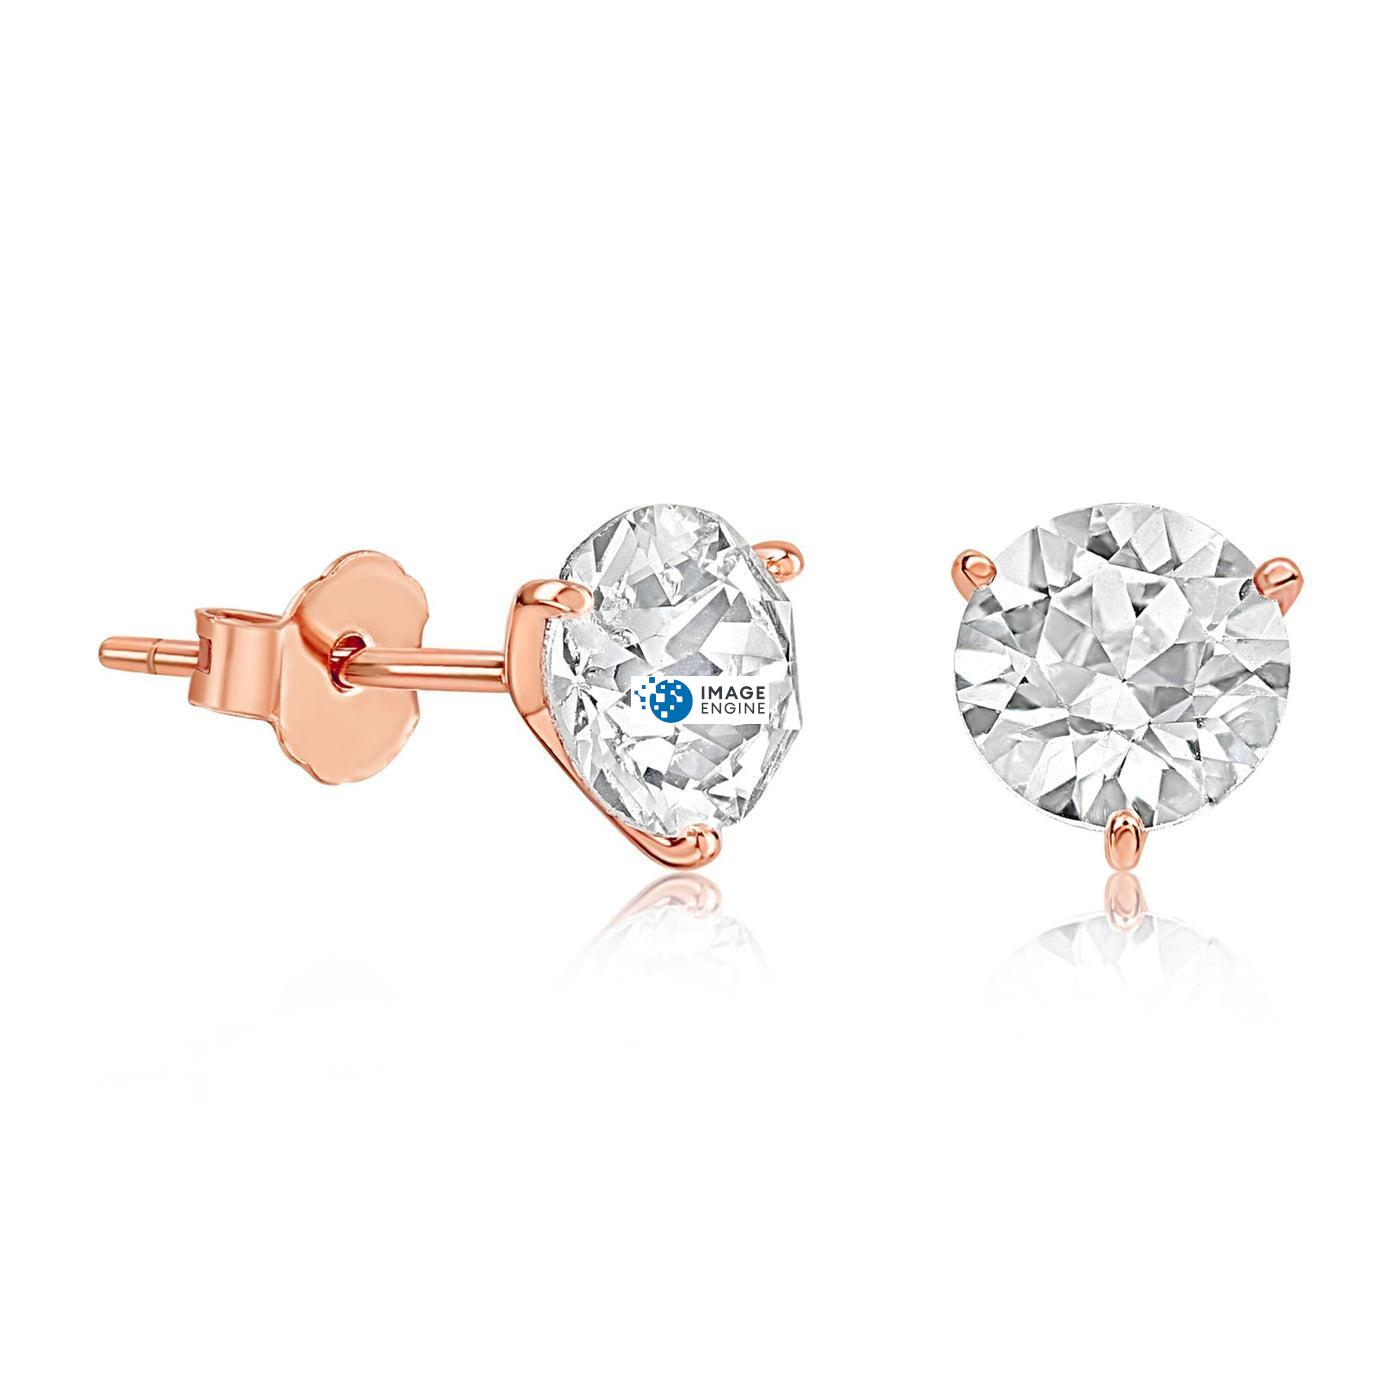 Swarovski Stud Earrings - Facing to the Right Down - 18K Rose Gold Vermeil